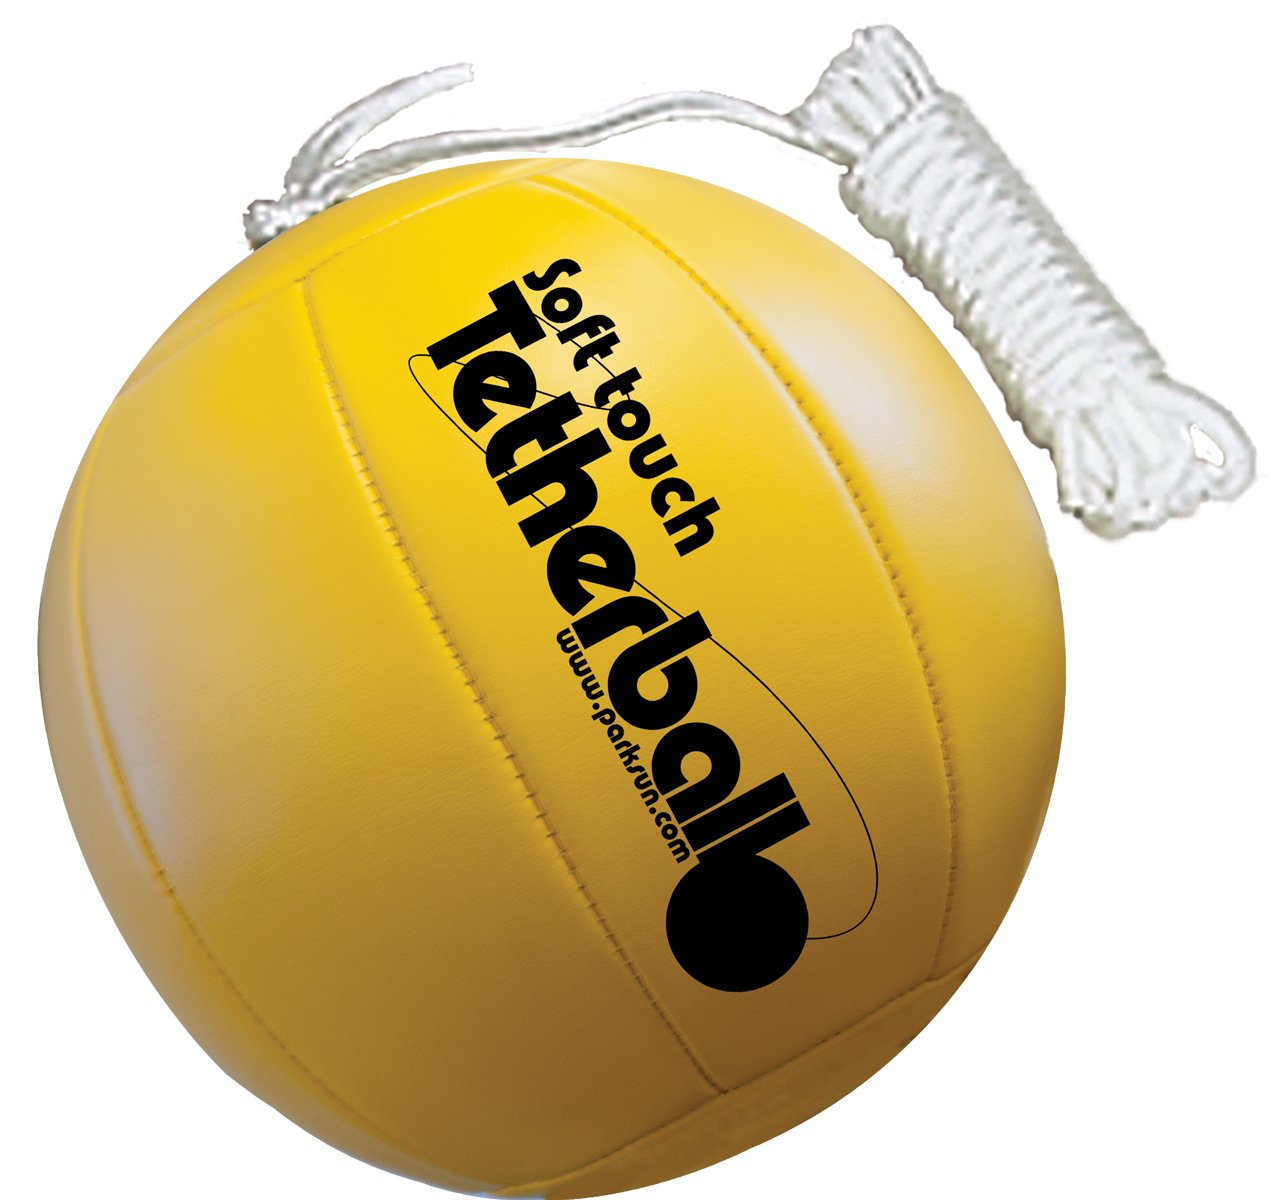 Park & Sun Sports Soft Touch Tetherball with 7' Nylon Cord and Clip, Classic Yellow by Park & Sun Sports (Image #1)